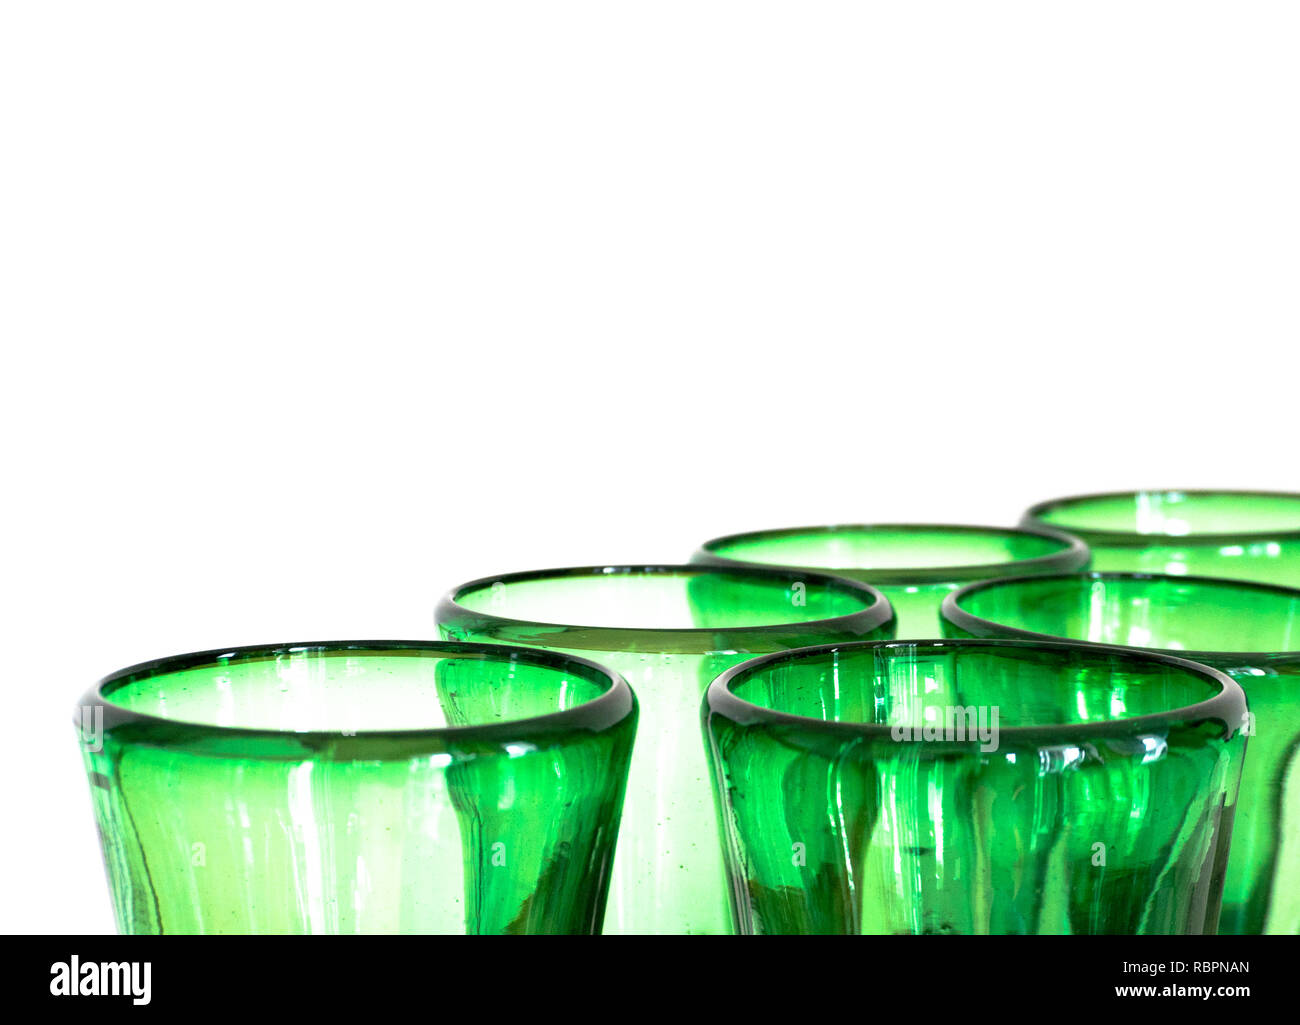 green glass designer wine glasses detail view abstract with copy space horizonal and white background - Stock Image